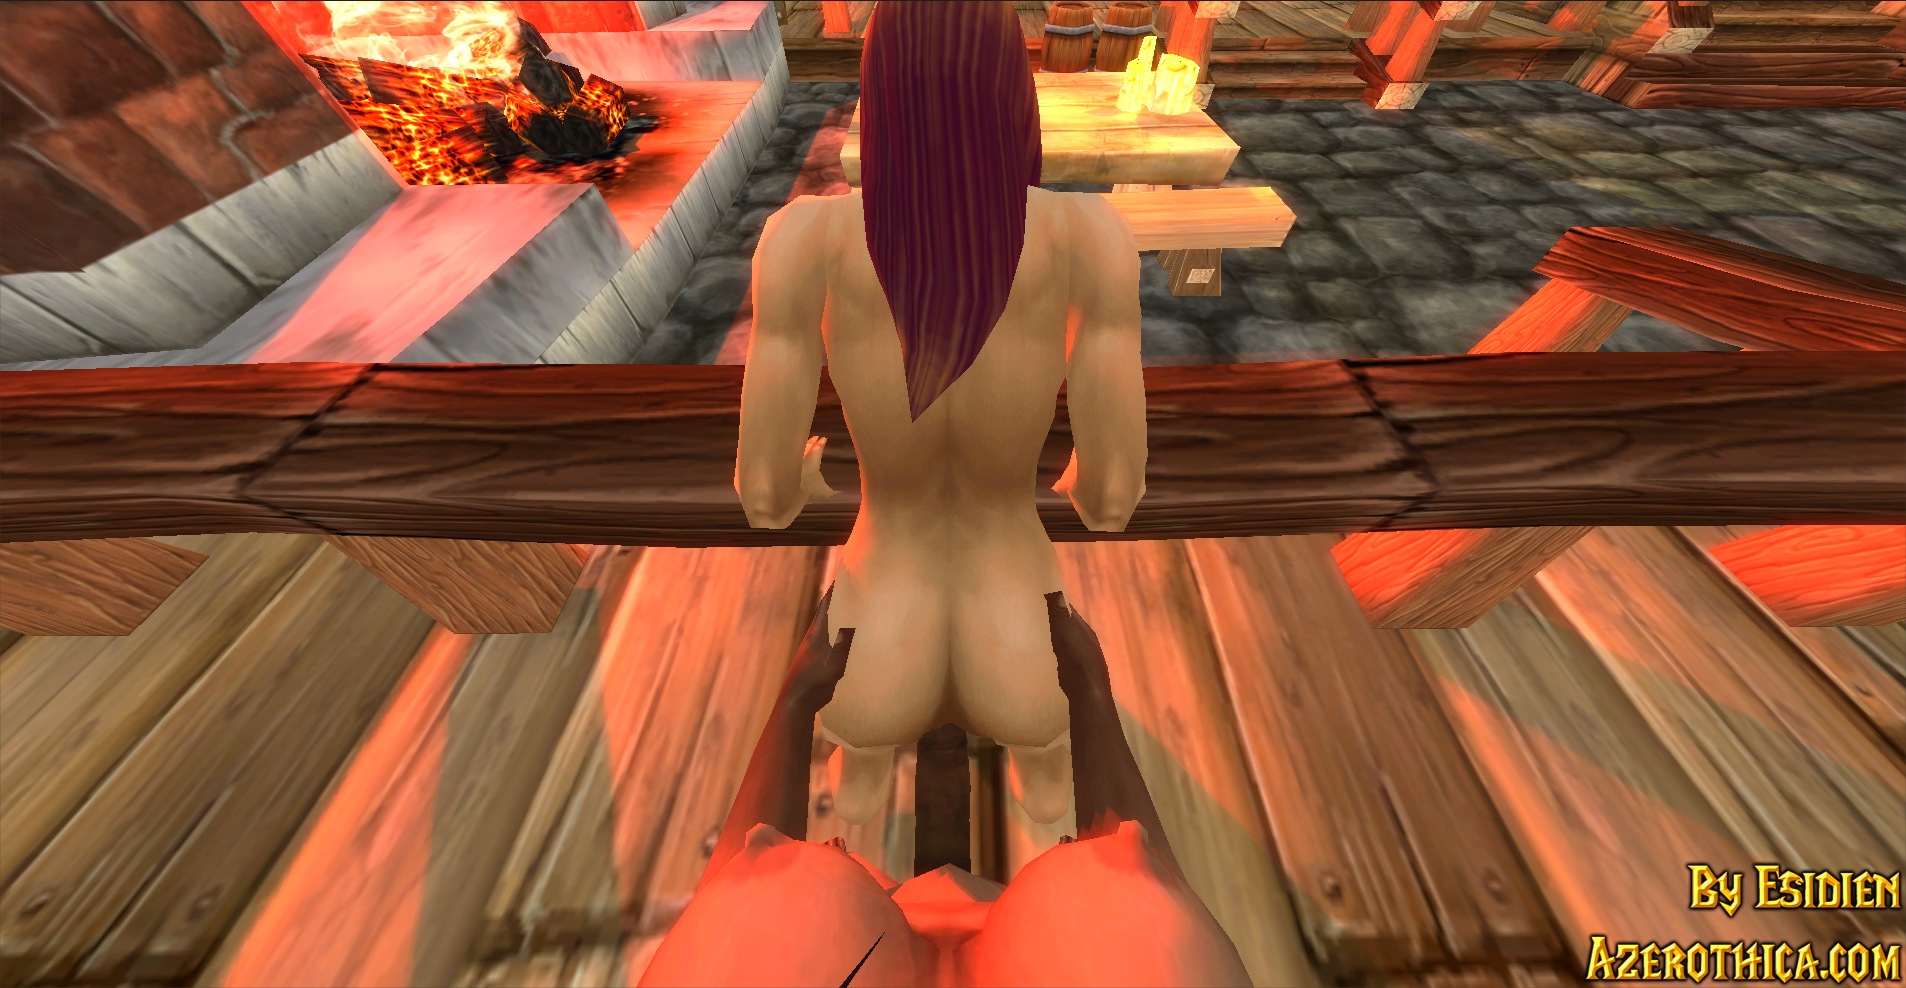 Warcraft shemale pics hentai picture